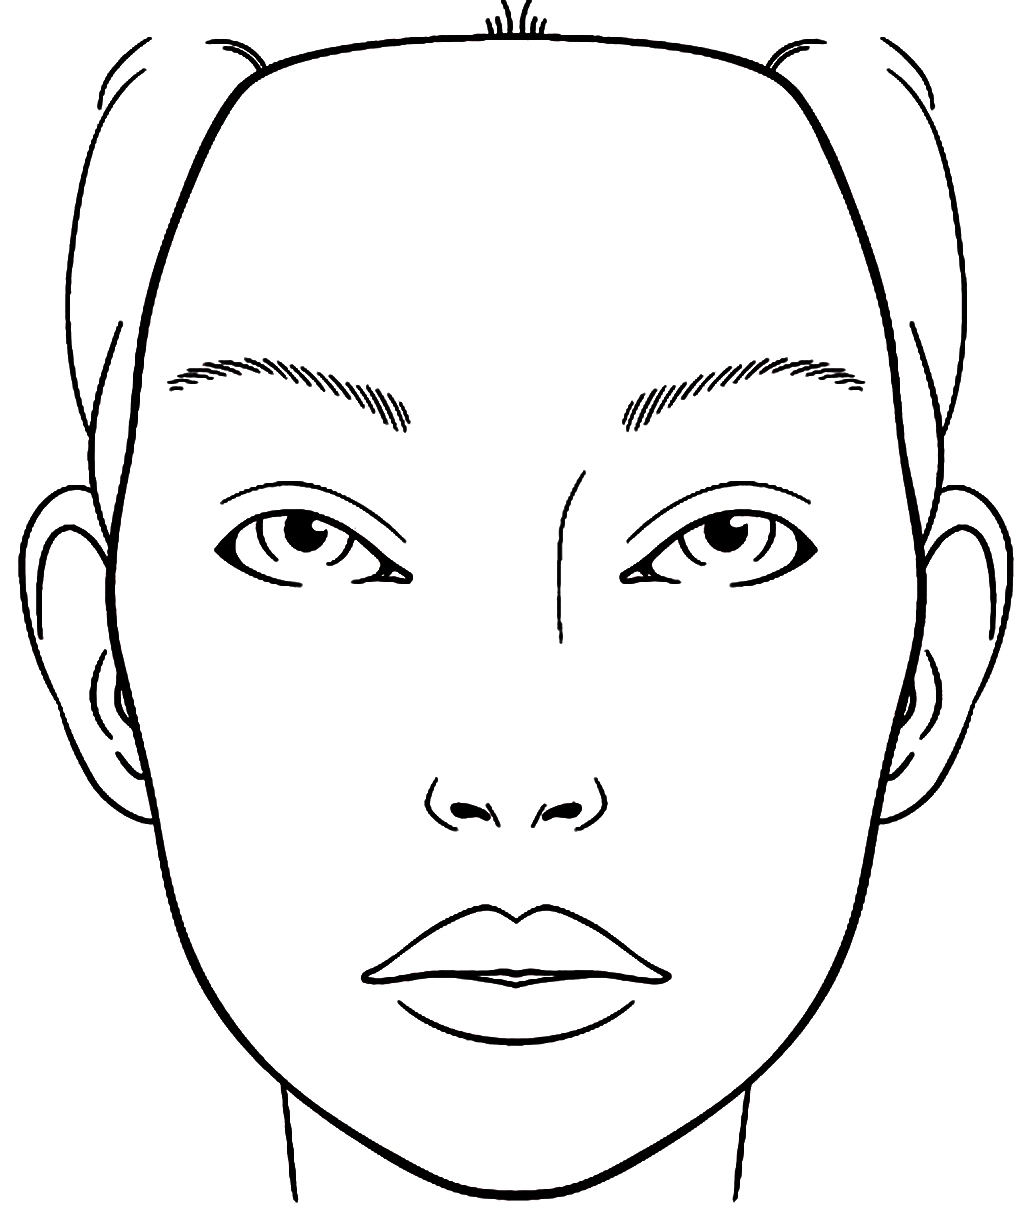 face coloring page - r=blank face